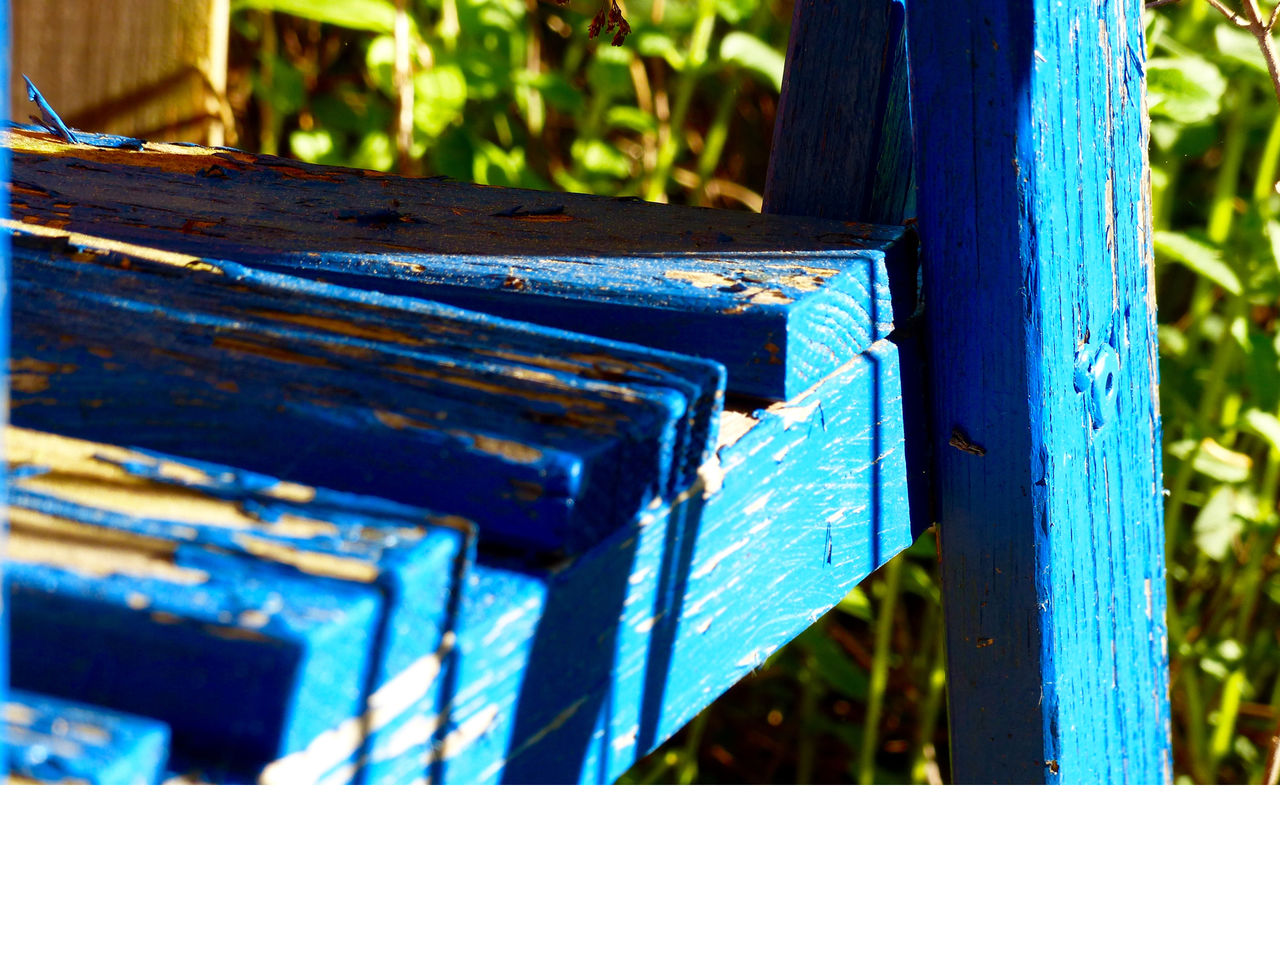 day, wood - material, outdoors, no people, blue, beehive, close-up, apiculture, nature, animal themes